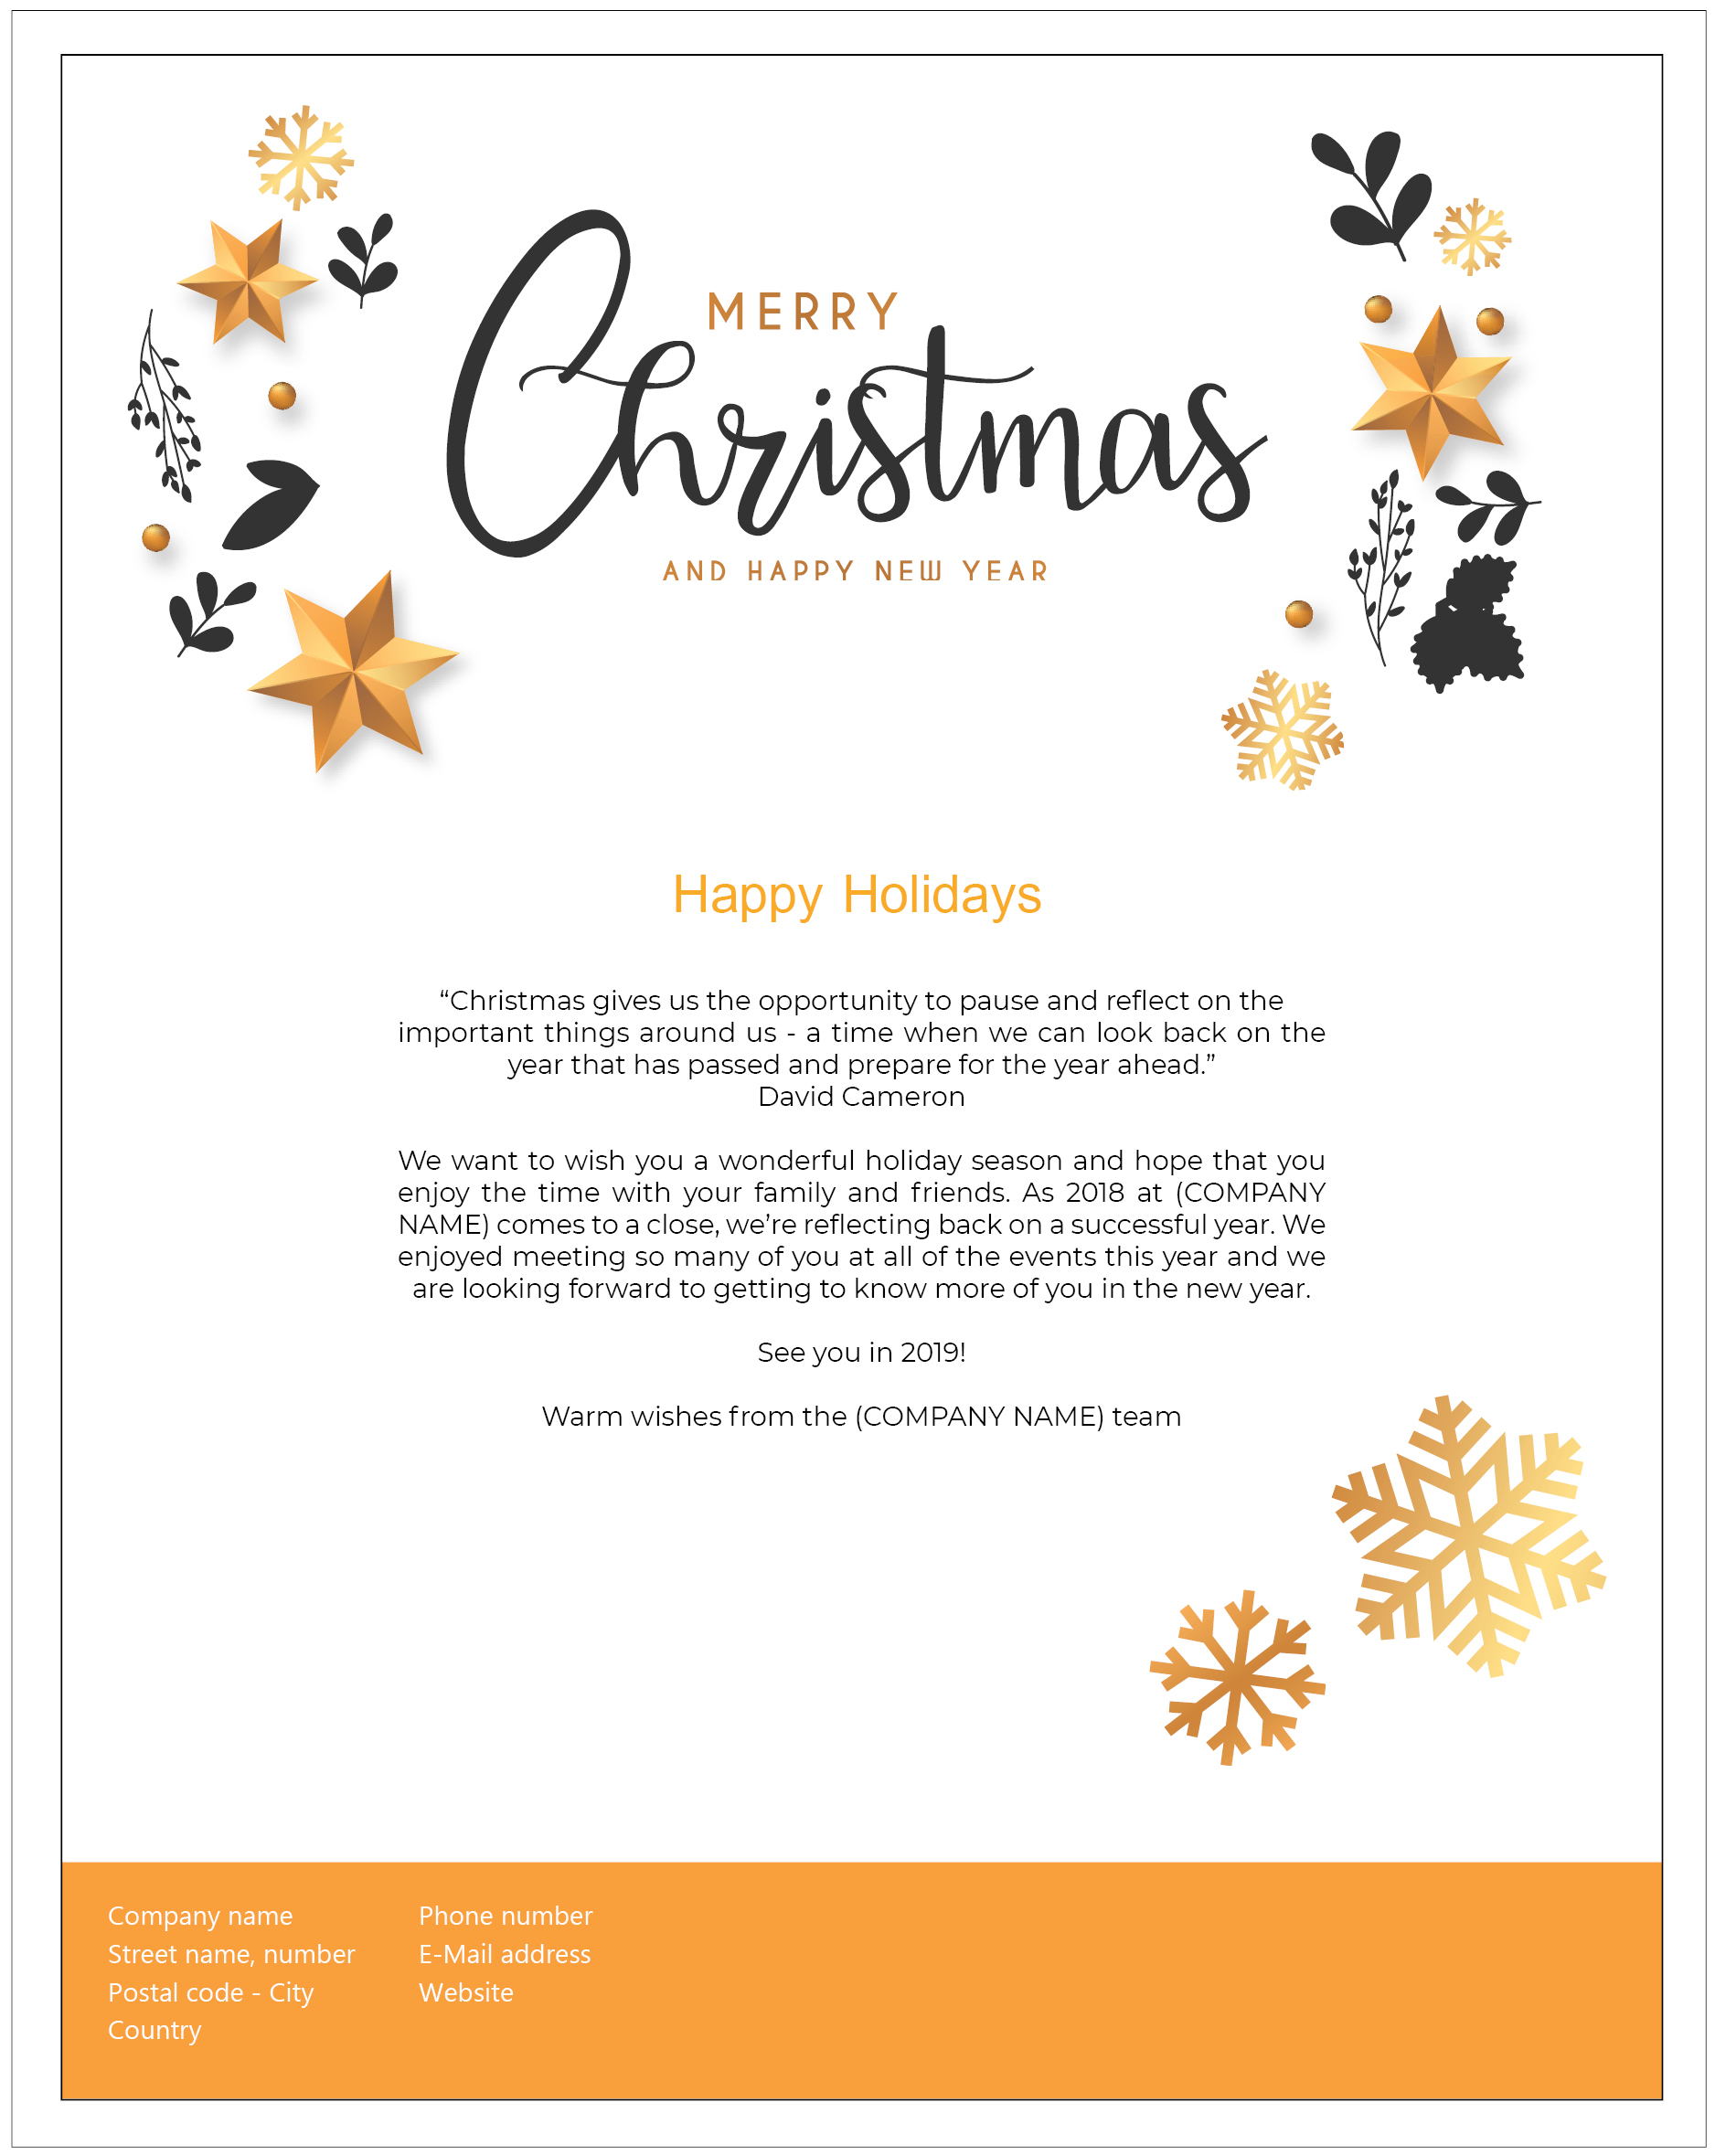 Recruiting at Christmas: 4 Christmas Nurturing Newsletter Examples